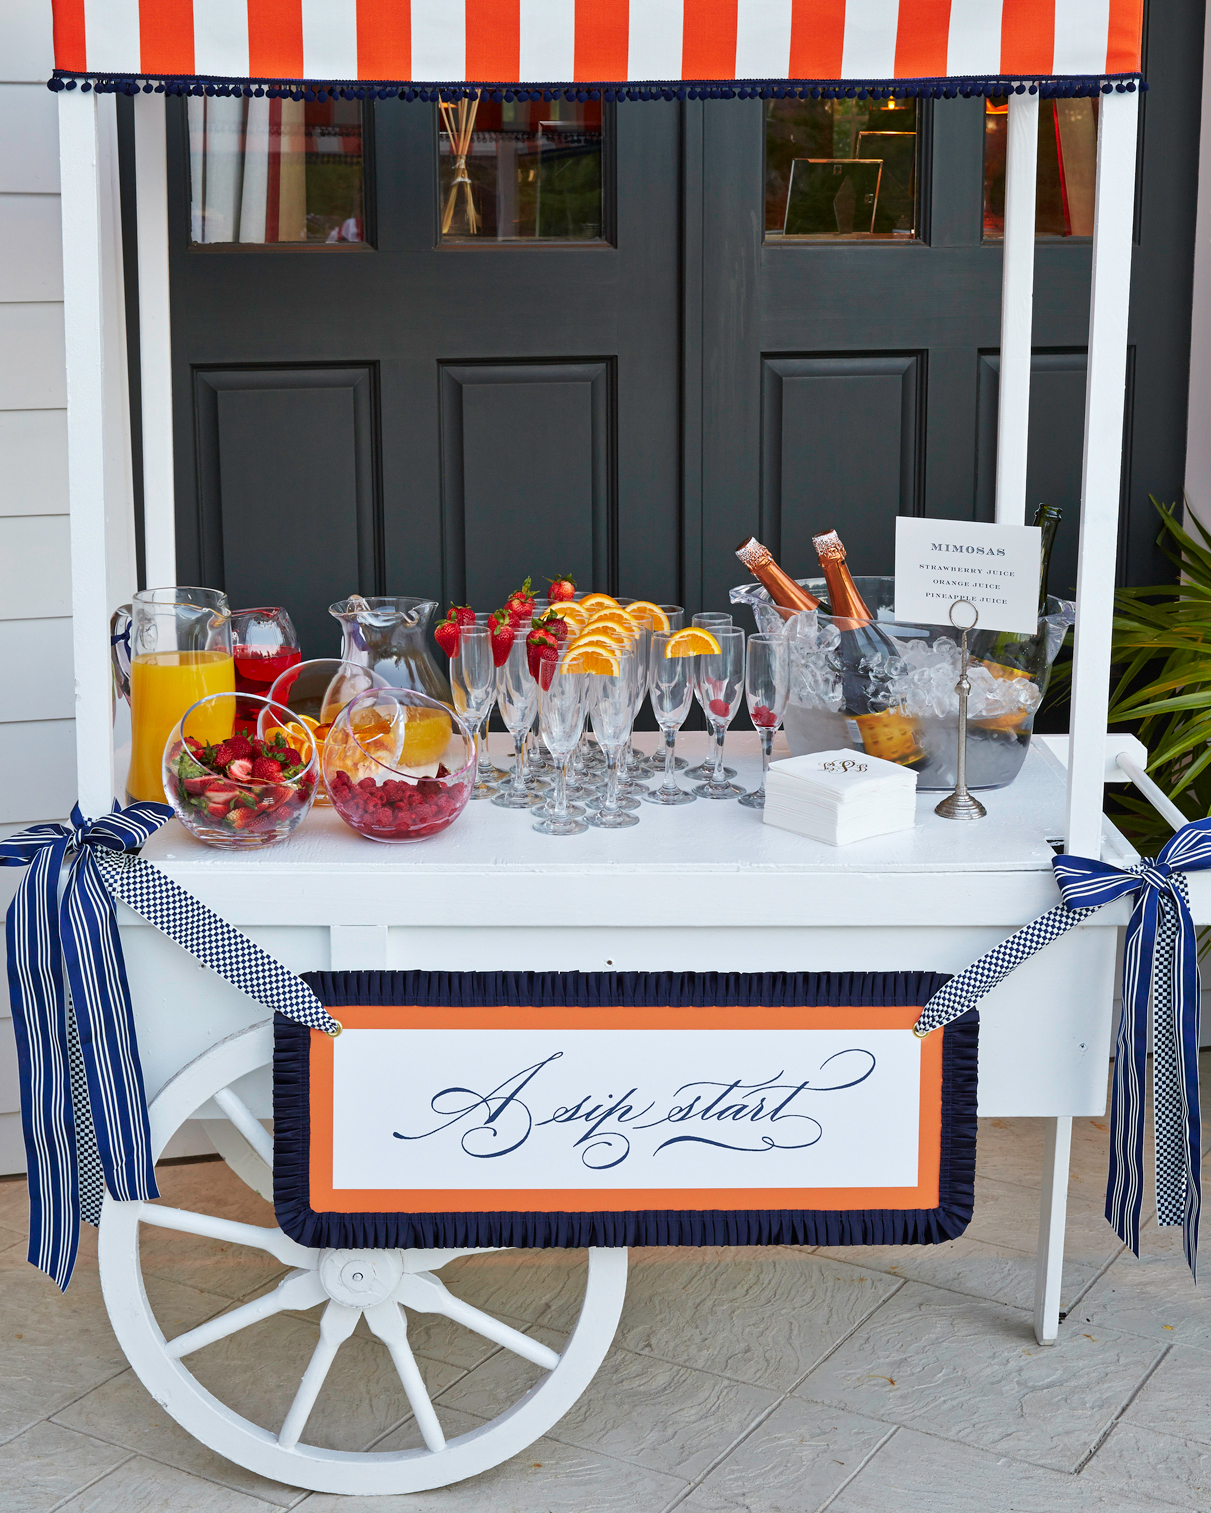 lydia-barritt-wedding-cart-0414.jpg